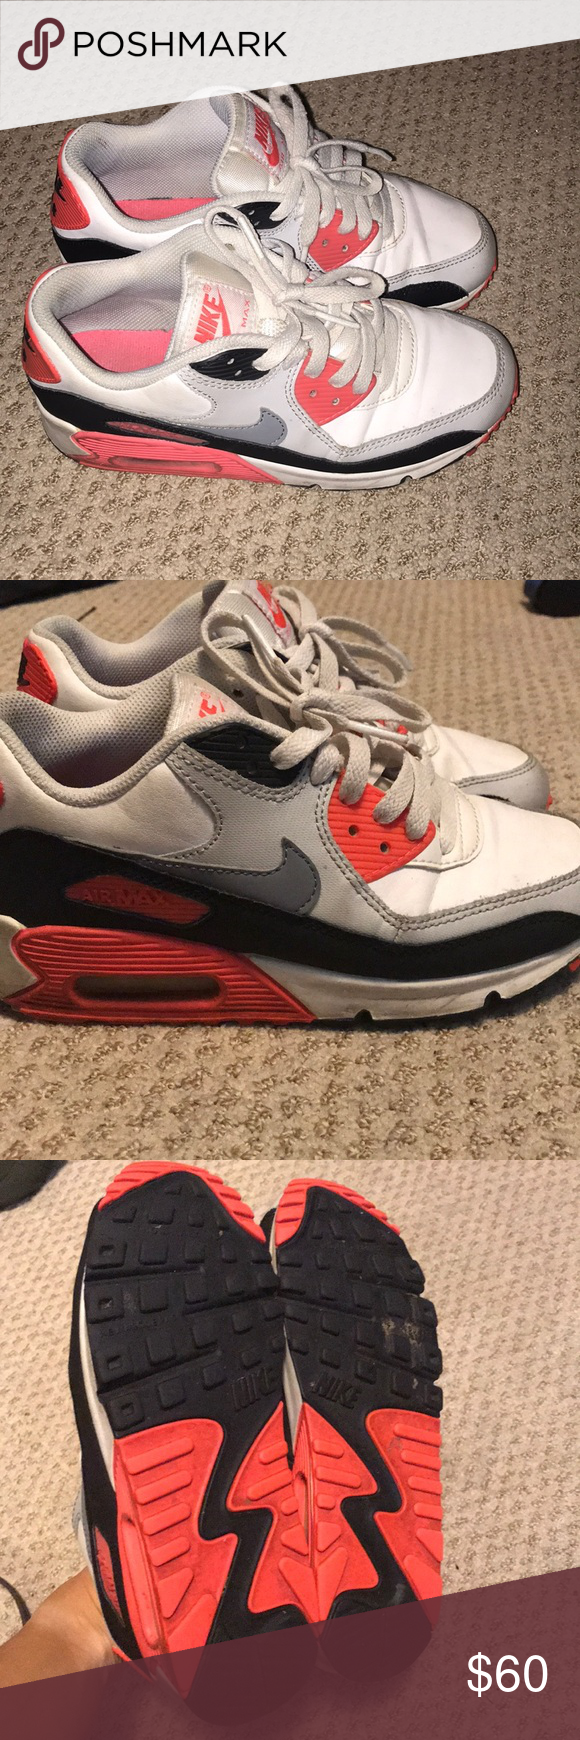 lowest price 75563 f0976 Nike air max 90 infrared youth size 4 The originals! Hard to find these  days. 4 youth   5.5 women s Nike Shoes Sneakers